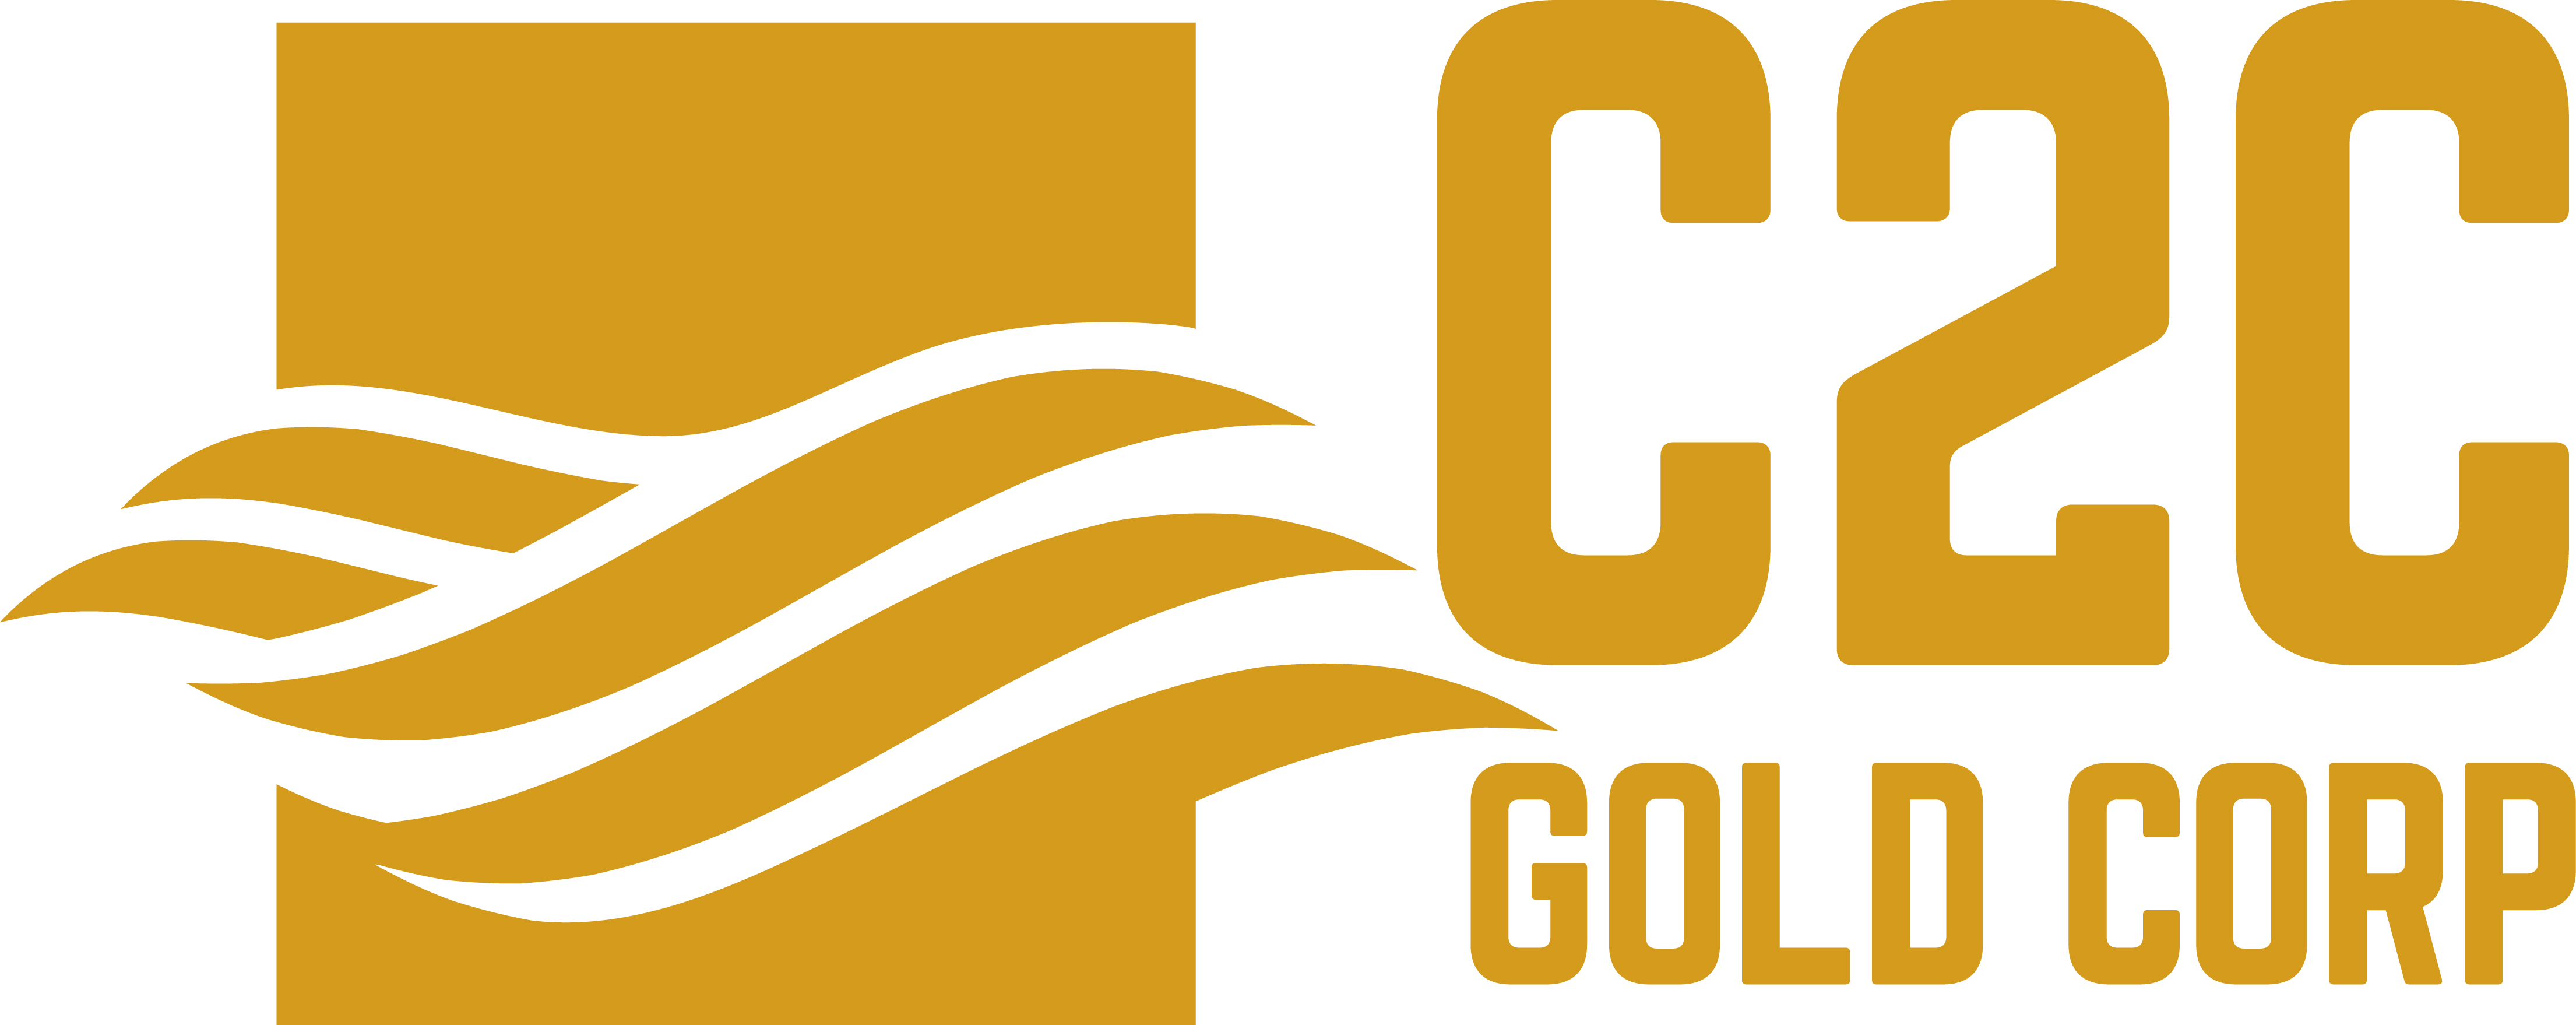 C2C Gold Expands Newfoundland Holdings; Now Holds 876 sq. km